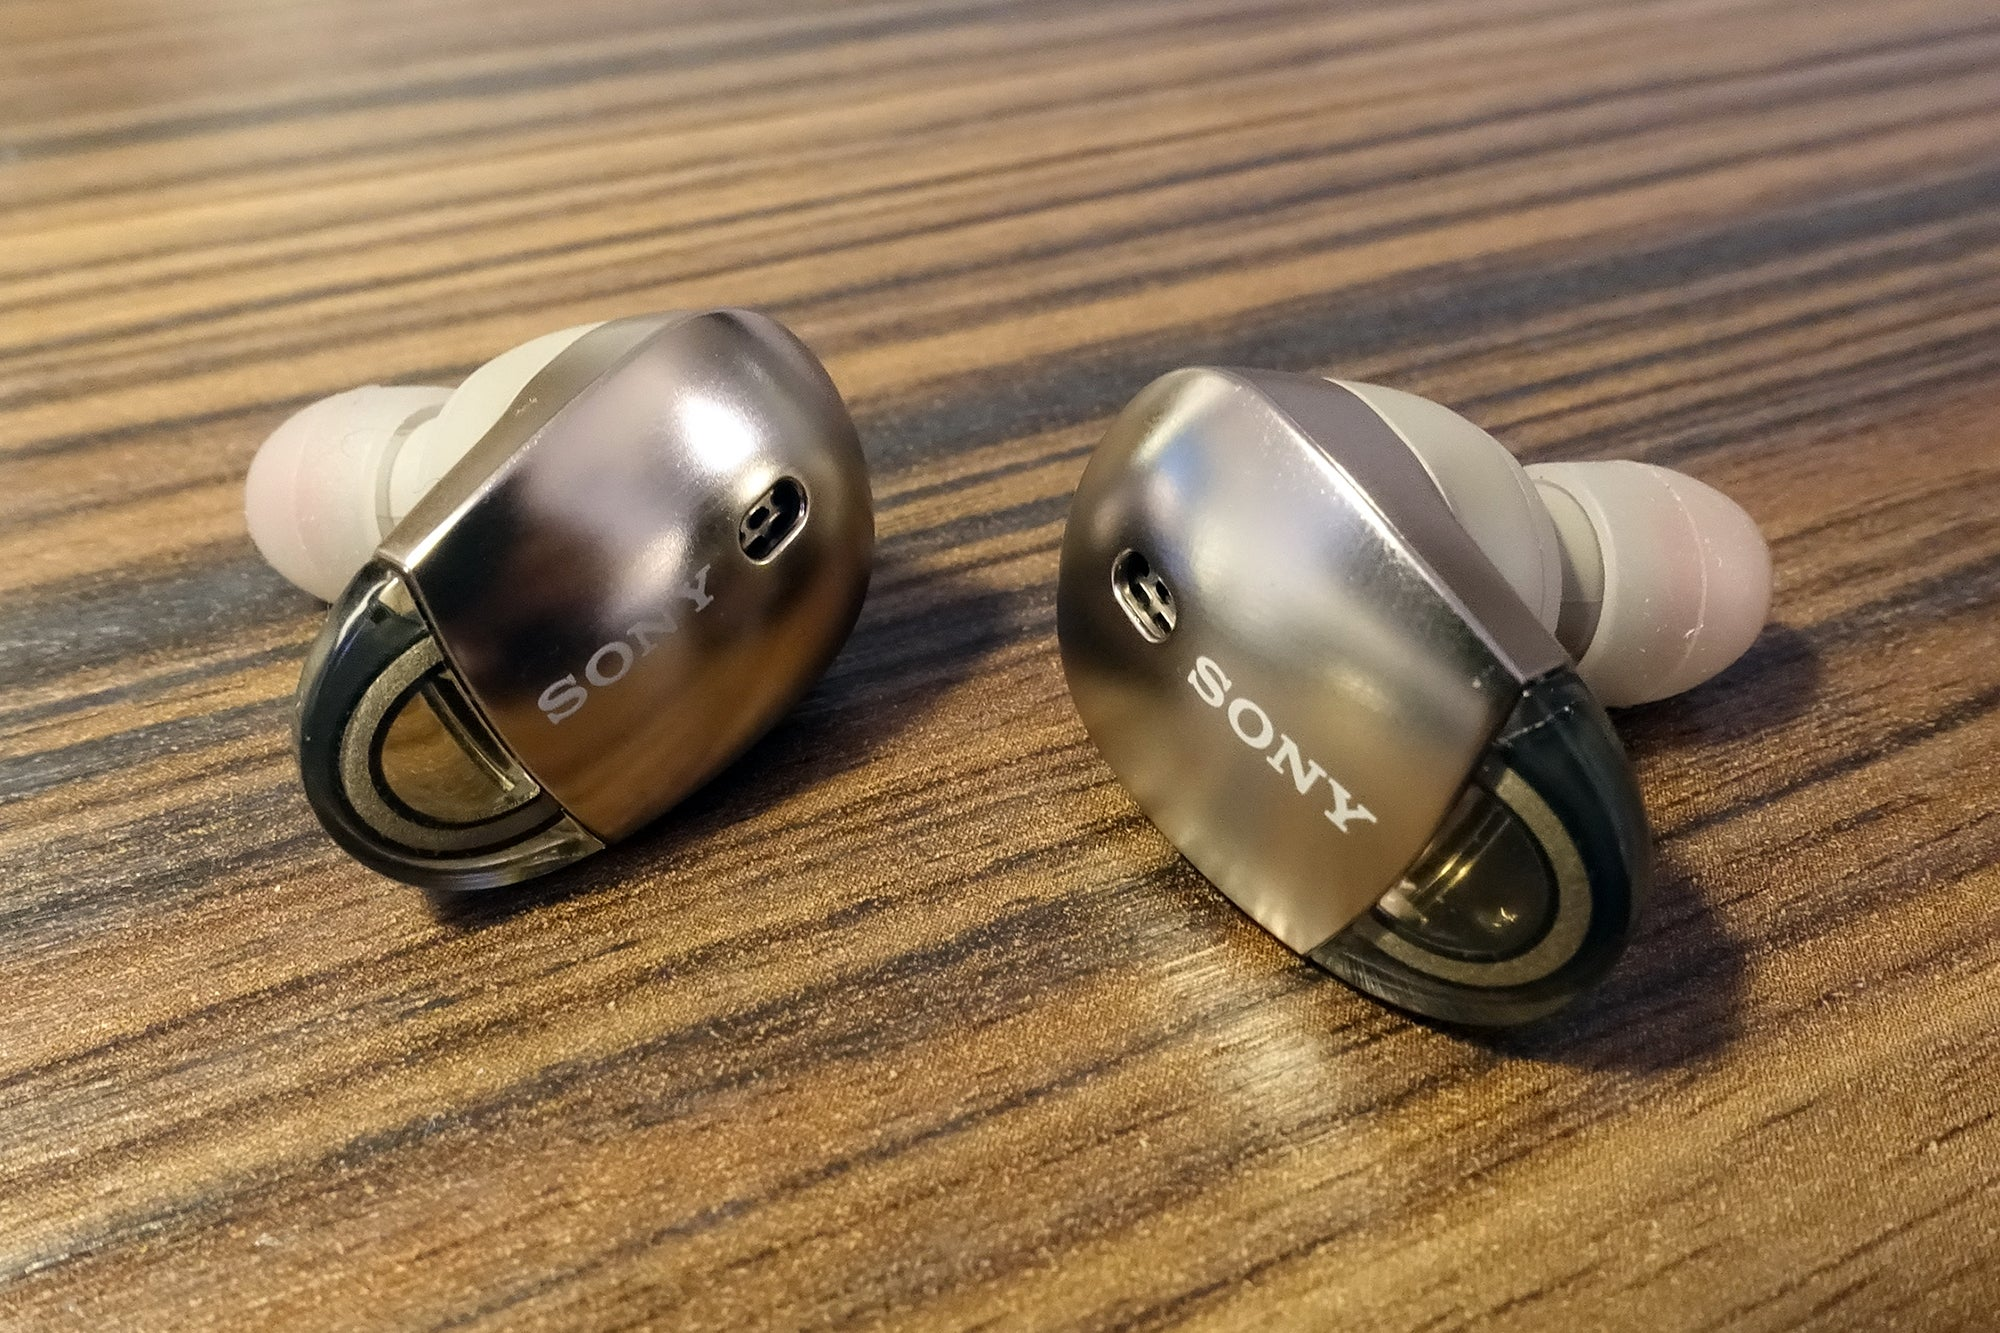 Sony Wf 1000x The Best Wireless Earbuds Out Now